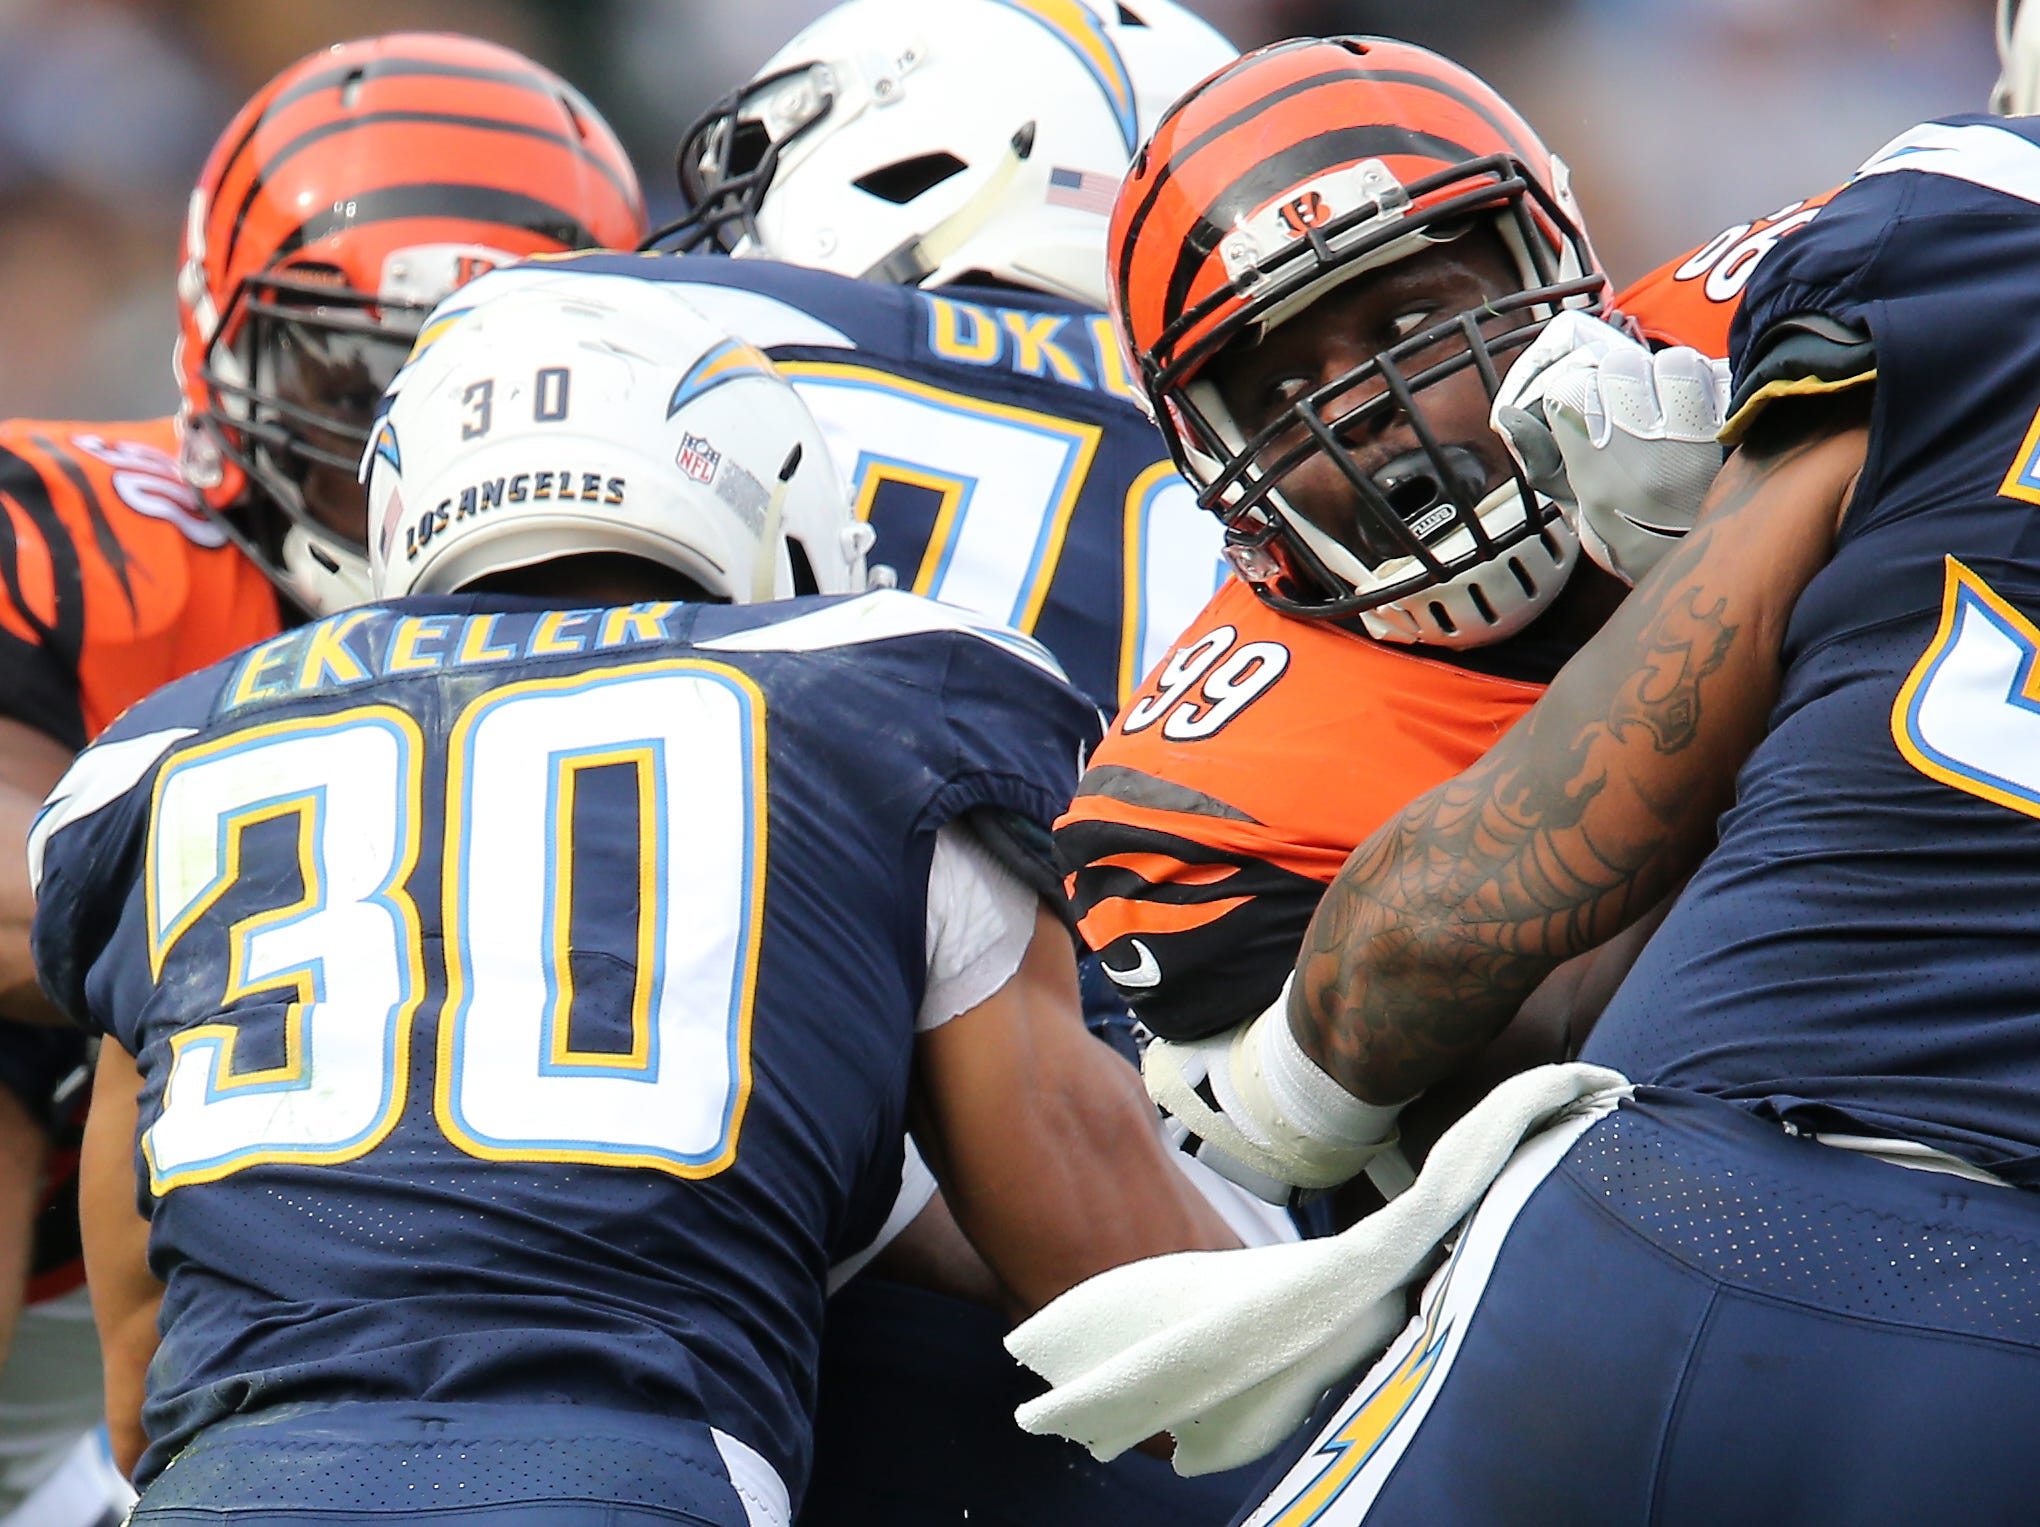 Cincinnati Bengals defensive tackle Andrew Billings (99) looks back to tackle Los Angeles Chargers running back Austin Ekeler (30) in the first quarter of a Week 14 NFL football game, Sunday, Dec. 9, 2018, at StubHub Center in Carson, California.